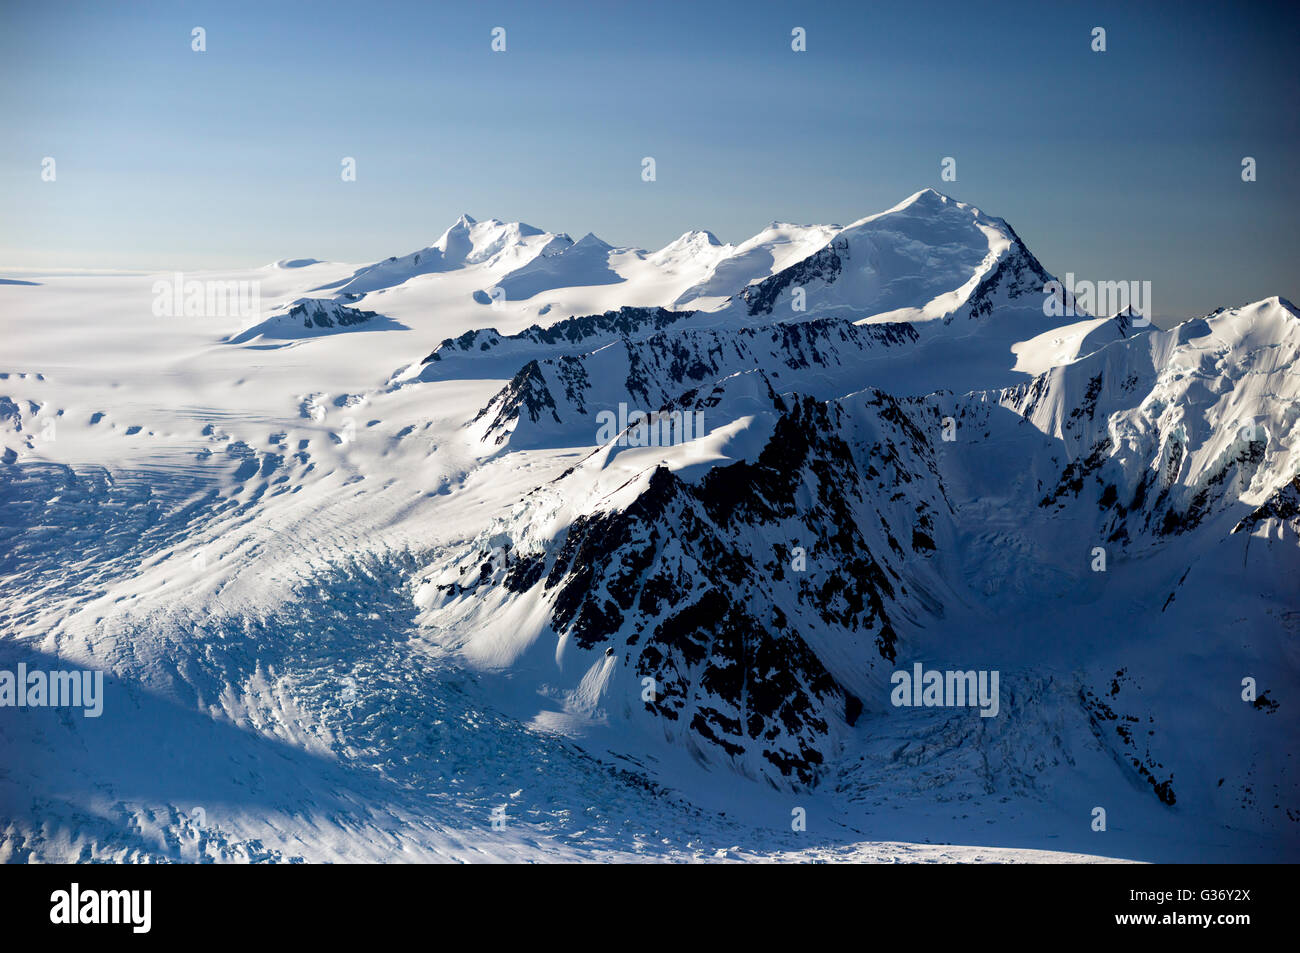 An aerial photo from the Chugach National Forest in Alaska USA. The Chugach National Forest is a 6,908,540-acre - Stock Image